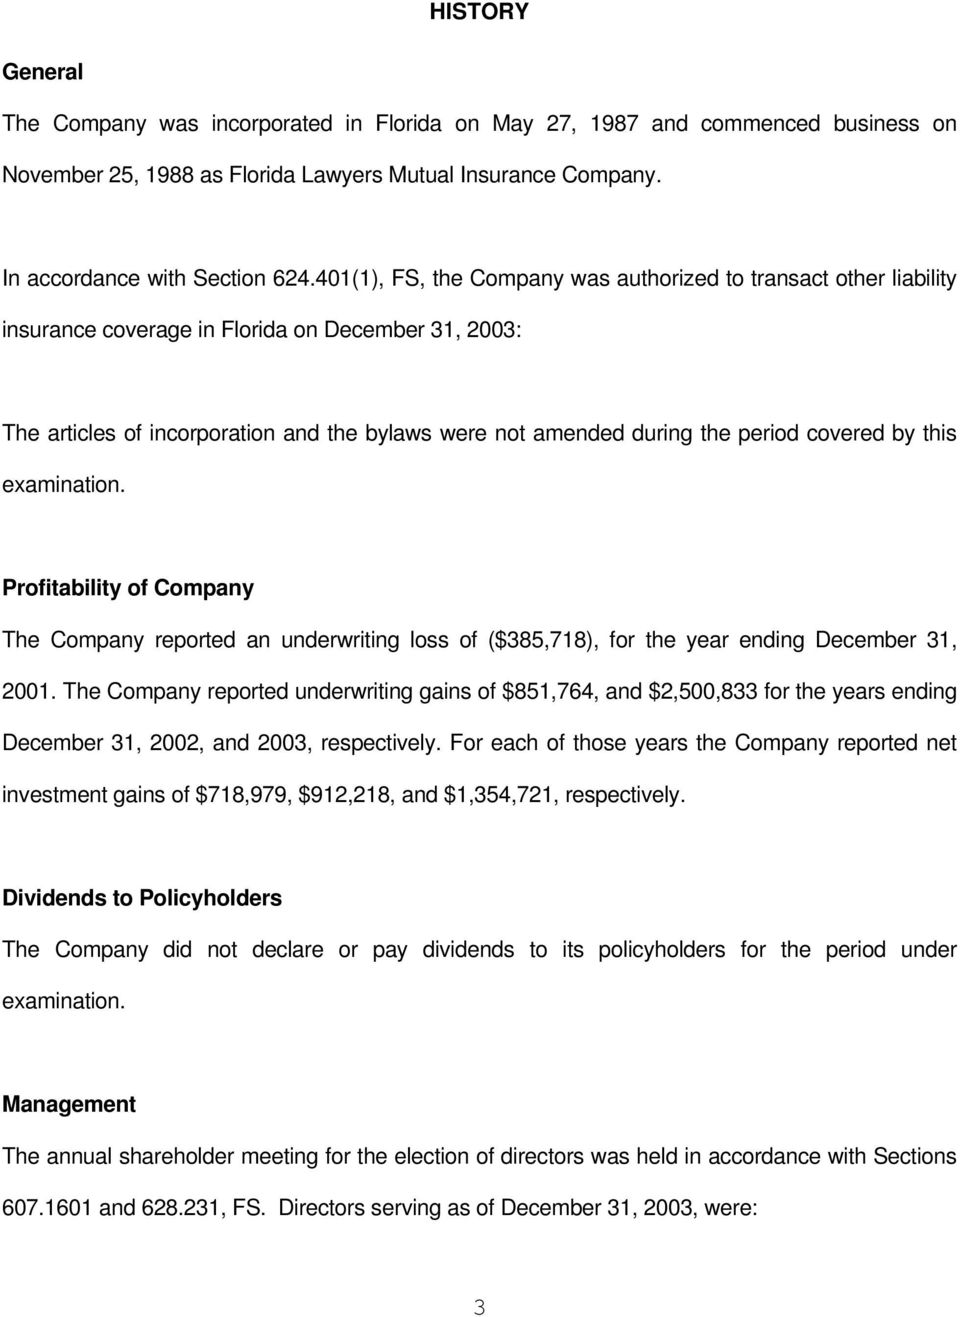 covered by this examination. Profitability of Company The Company reported an underwriting loss of ($385,718), for the year ending December 31, 2001.